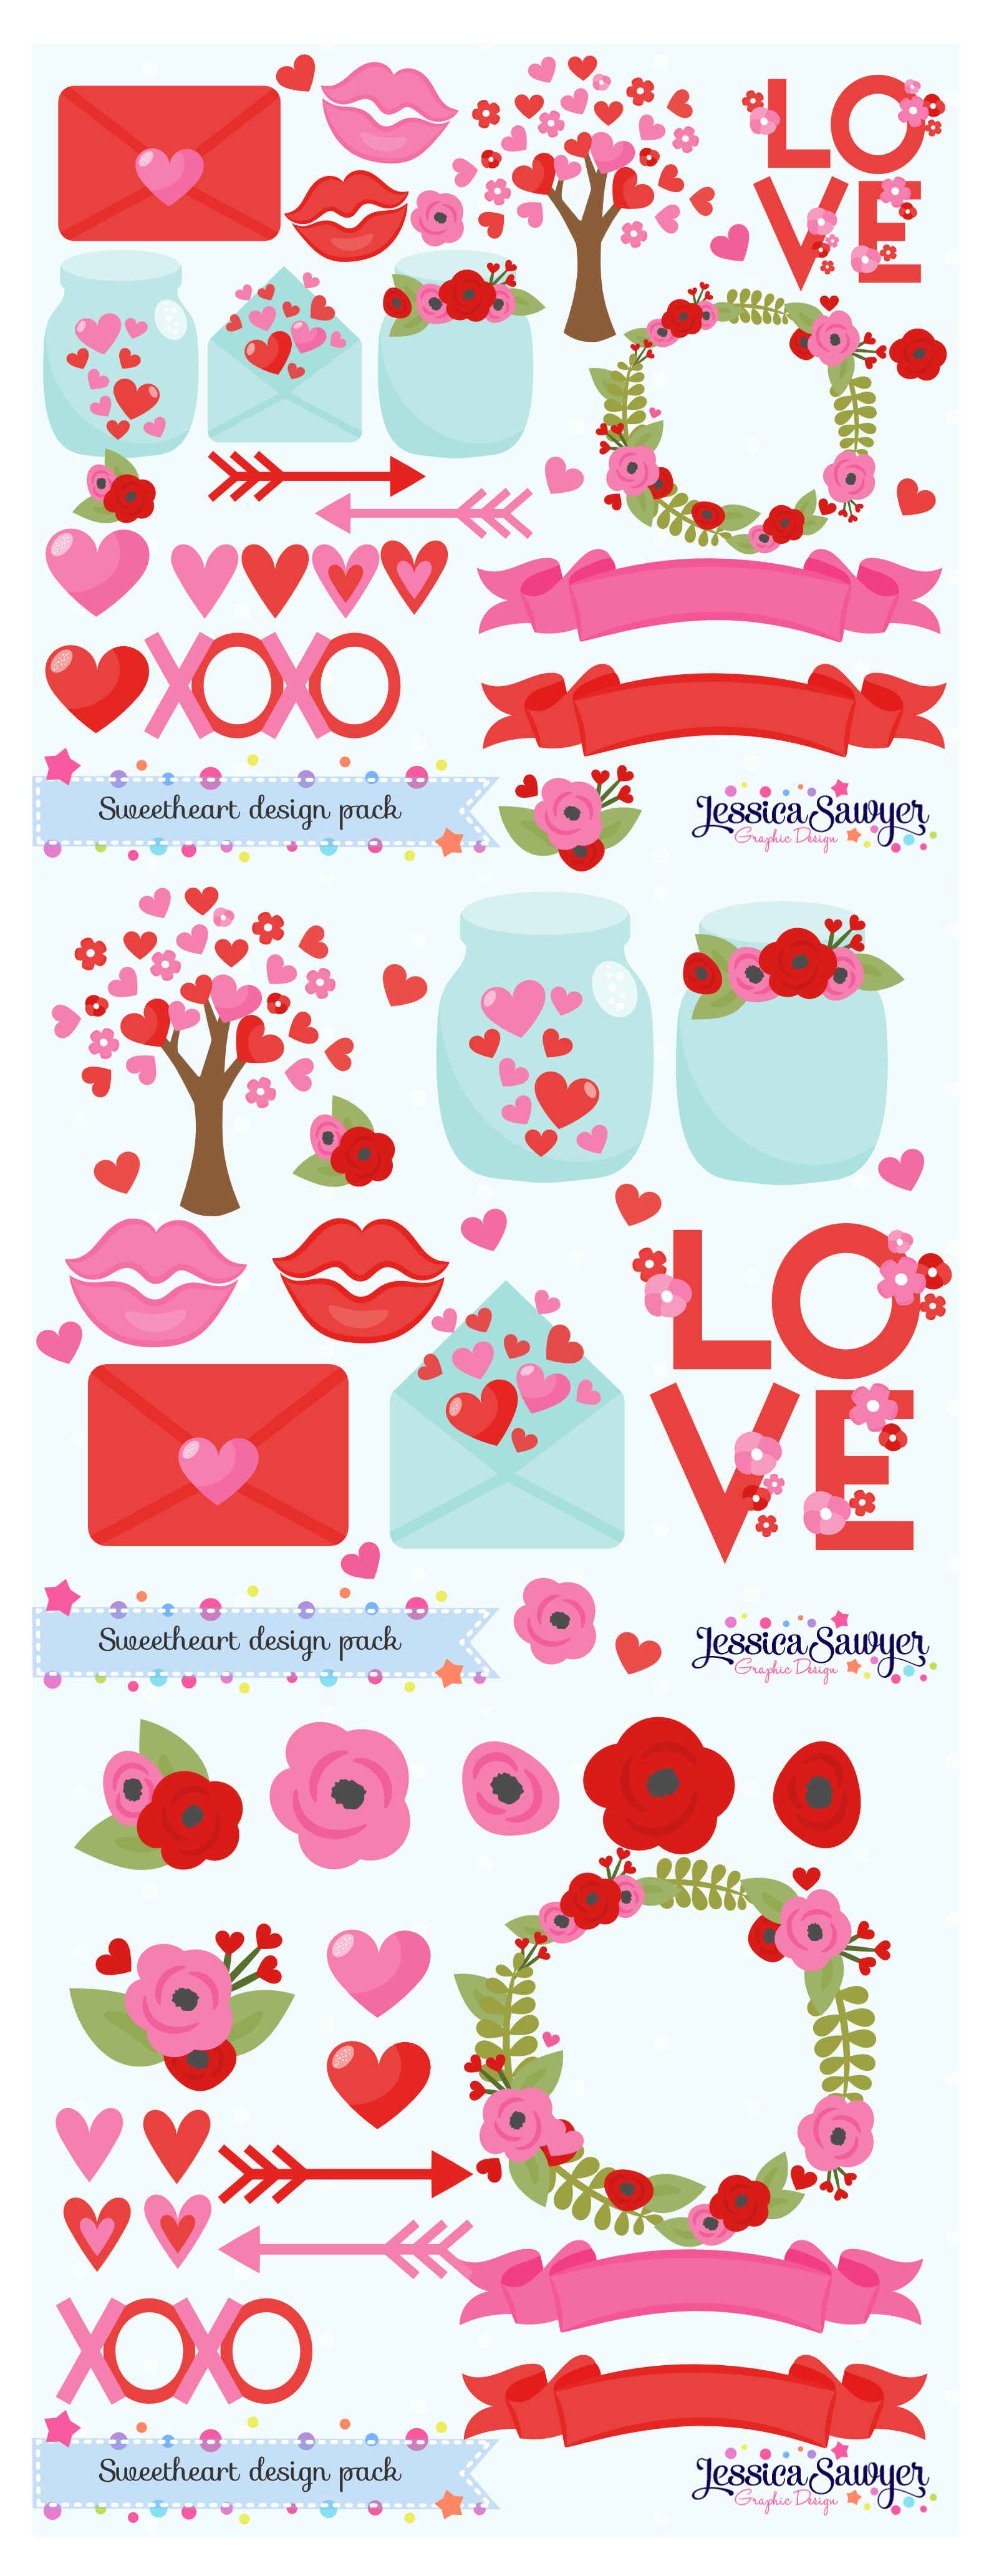 Instant Download Valentines Day Clipart And Vectors For Etsy In 2021 Valentines Day Clipart Valentines Illustration Download Valentines